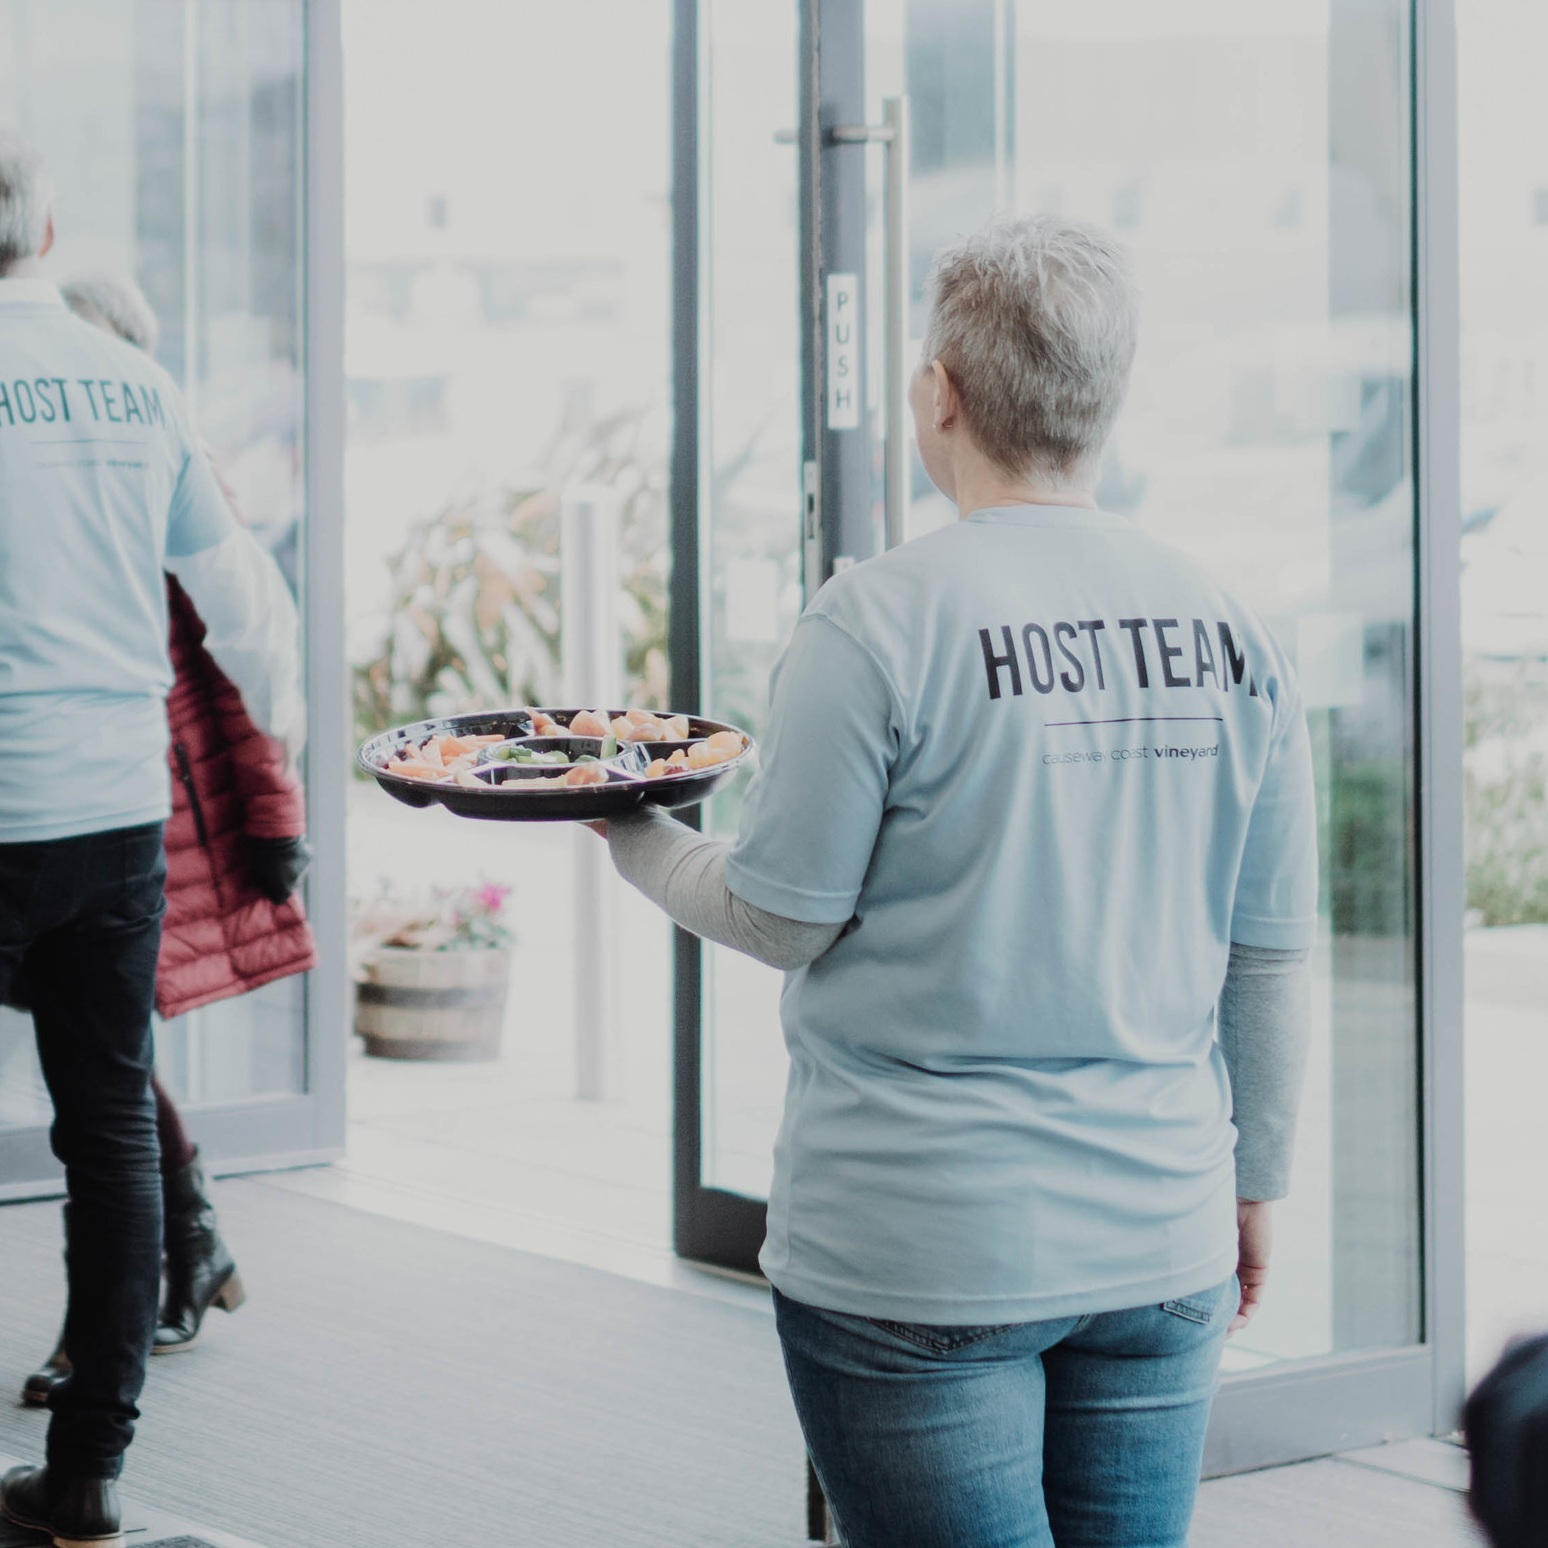 Thinking about coming to Causeway Coast Vineyard this Sunday? You may find it helpful to connect with someone at the start of the service through our 'Meet & Greet''. One of our newcomers team will connect with you in the foyer when you arrive, welcome you and show you to a seat!